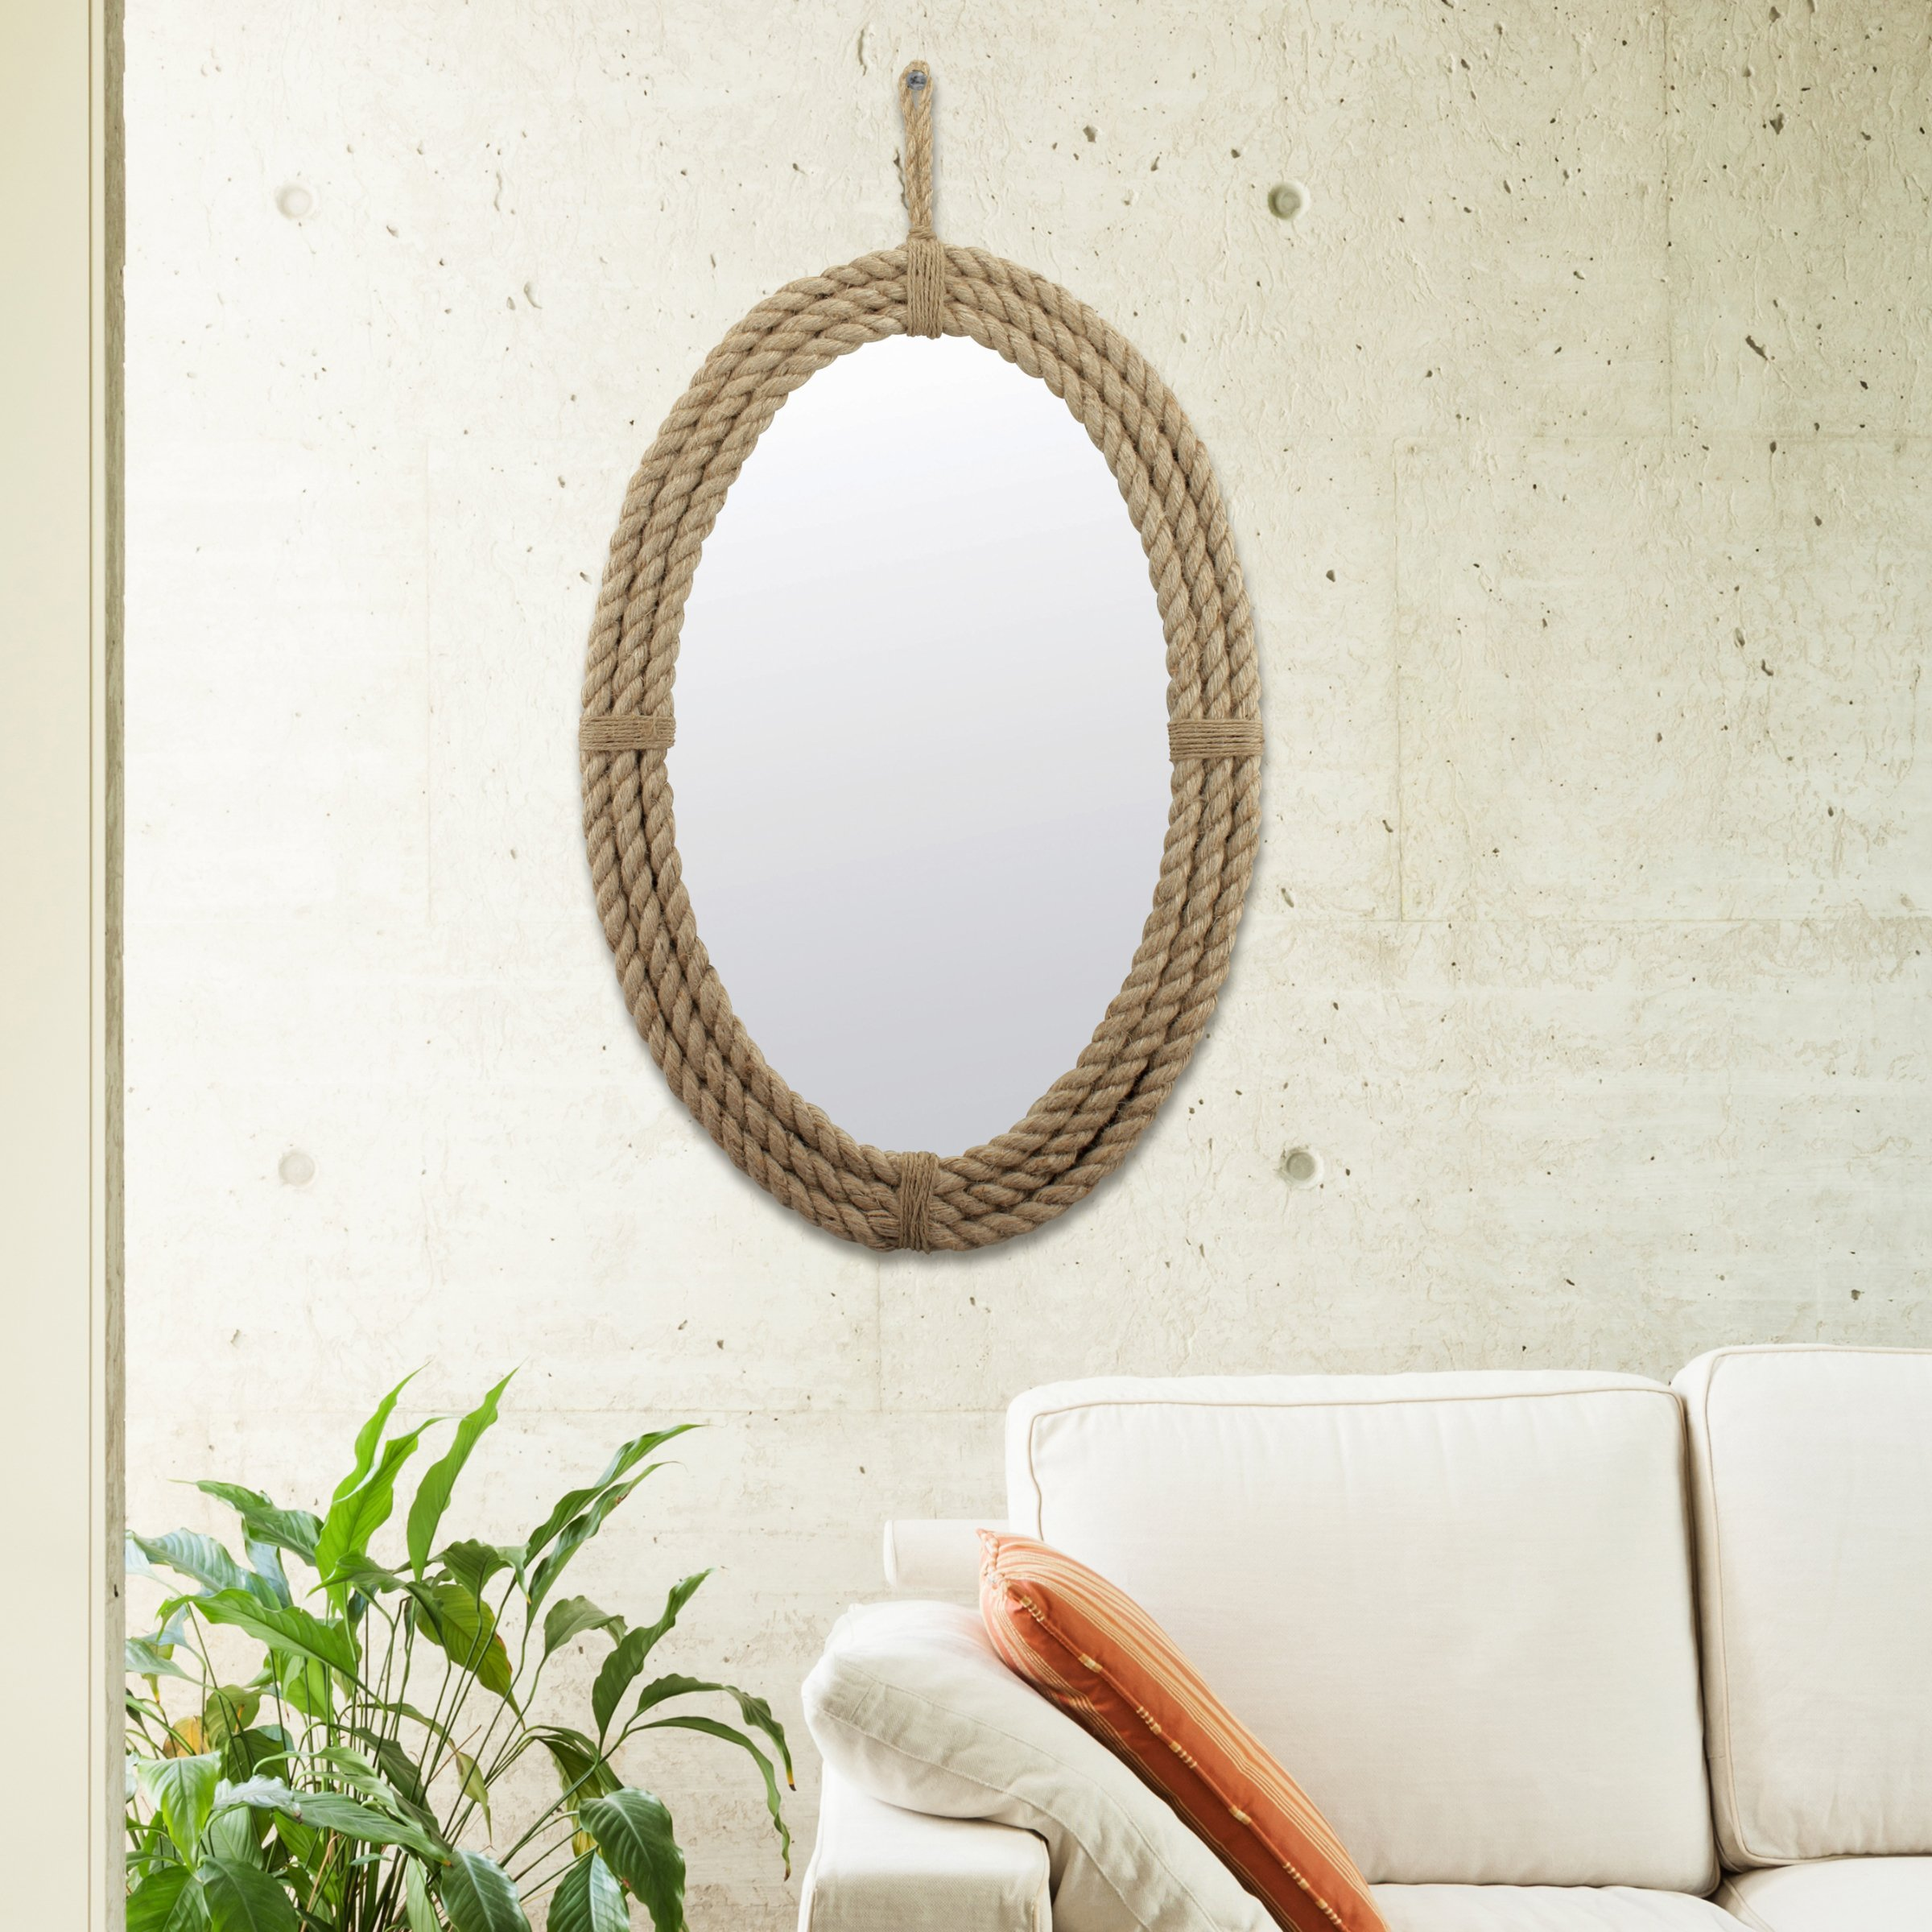 Stonebriar Decorative Oval Rope Mirror with Hanging Loop, Unique Wall Décor by Stonebriar (Image #4)